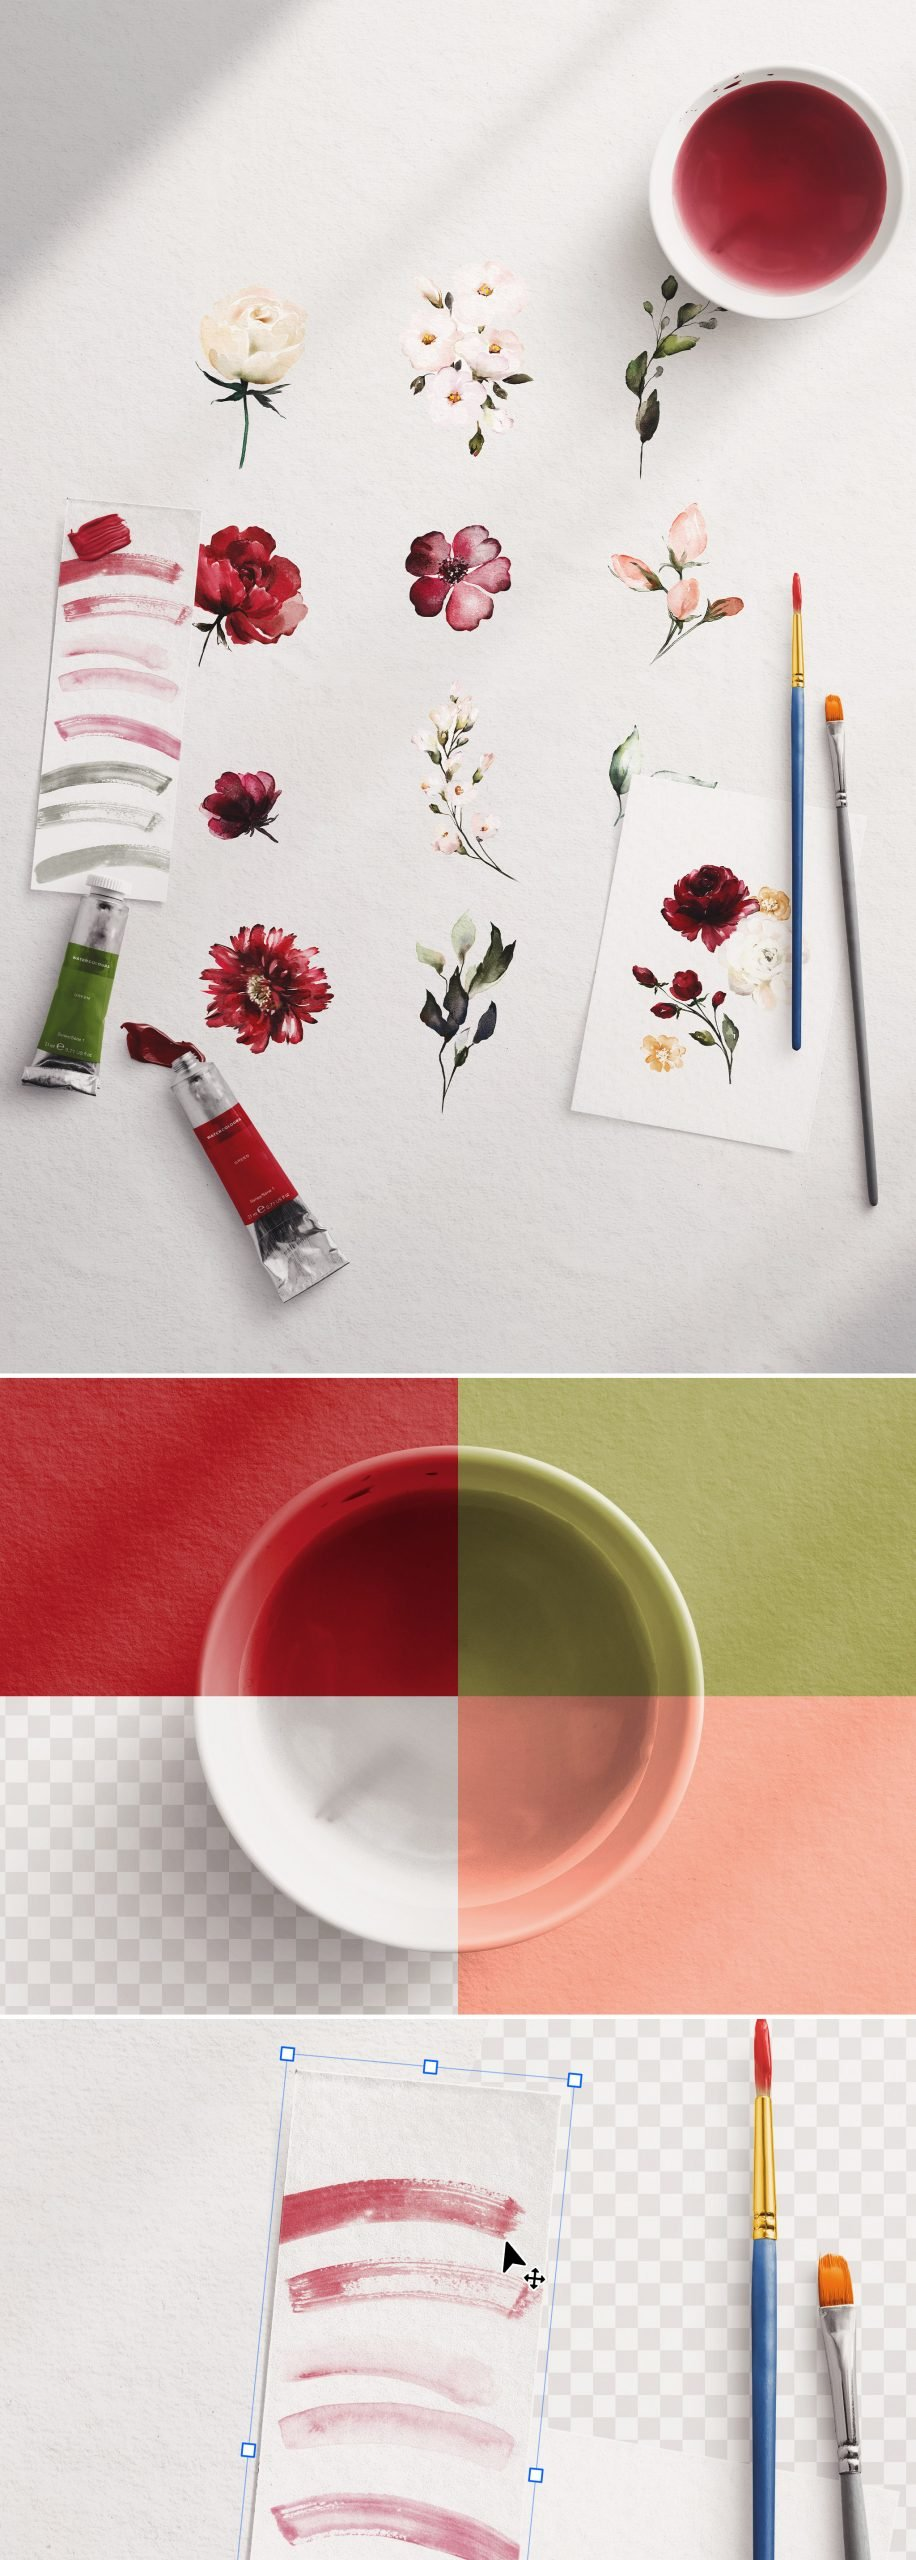 watercolor mockup scene creator 2 preview1 scaled